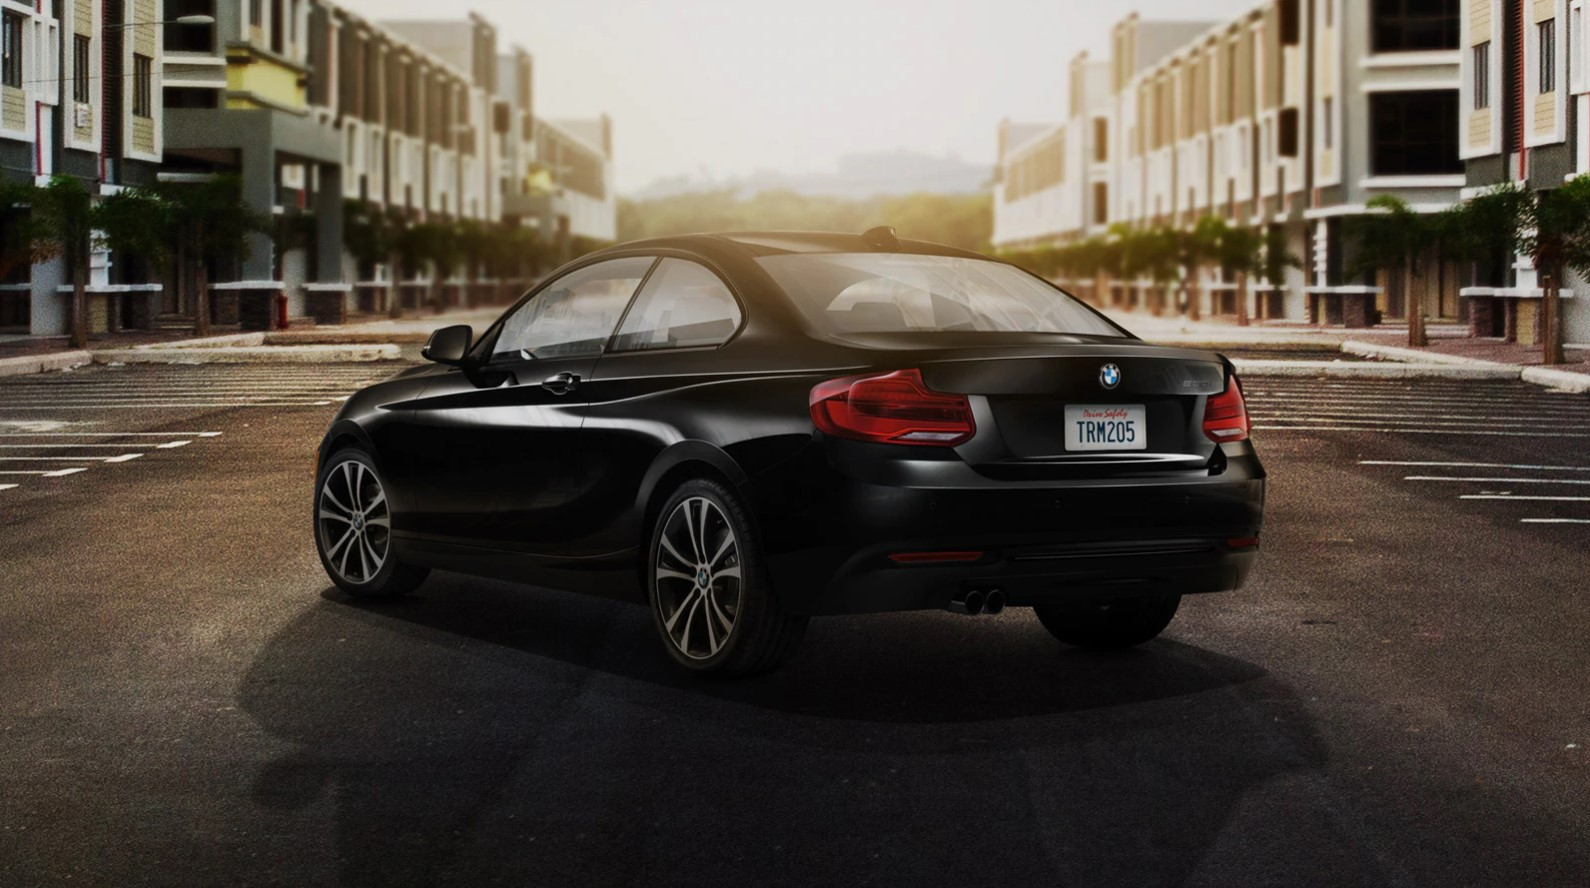 2019 BMW 230i Rear Black Driving Exterior